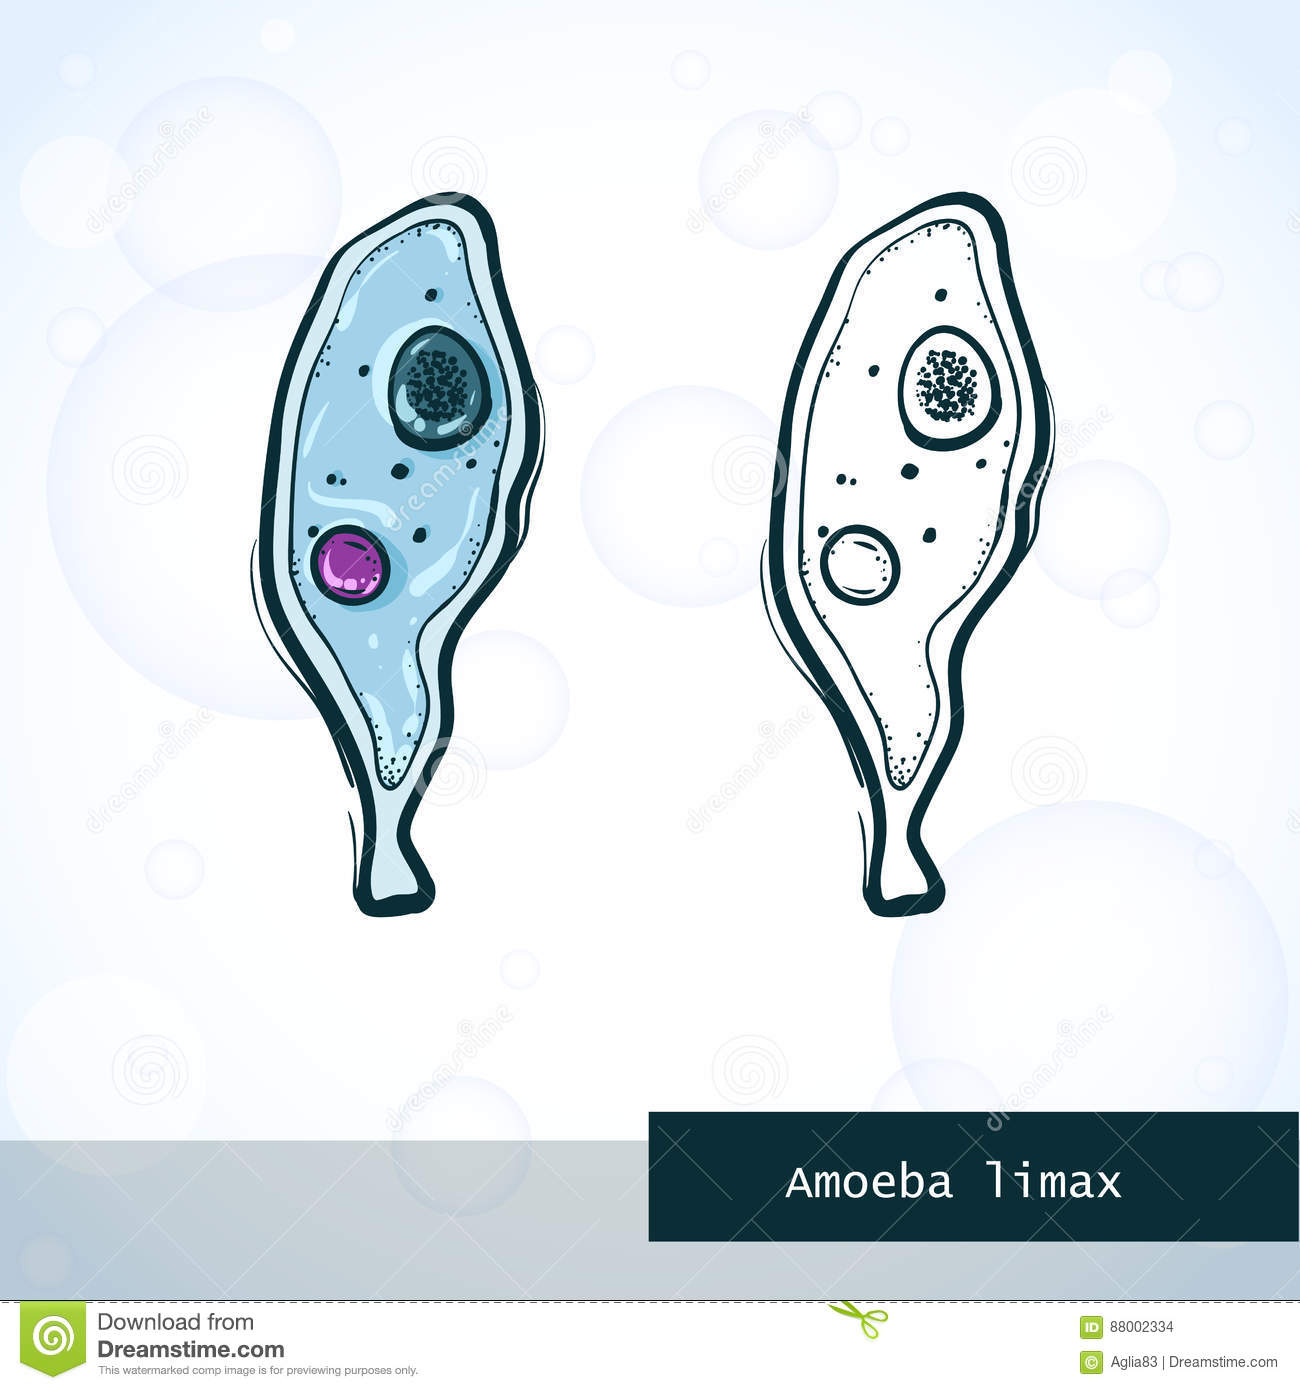 amoeba cell diagram pioneer head unit wiring structure of an proteus cartoon vector